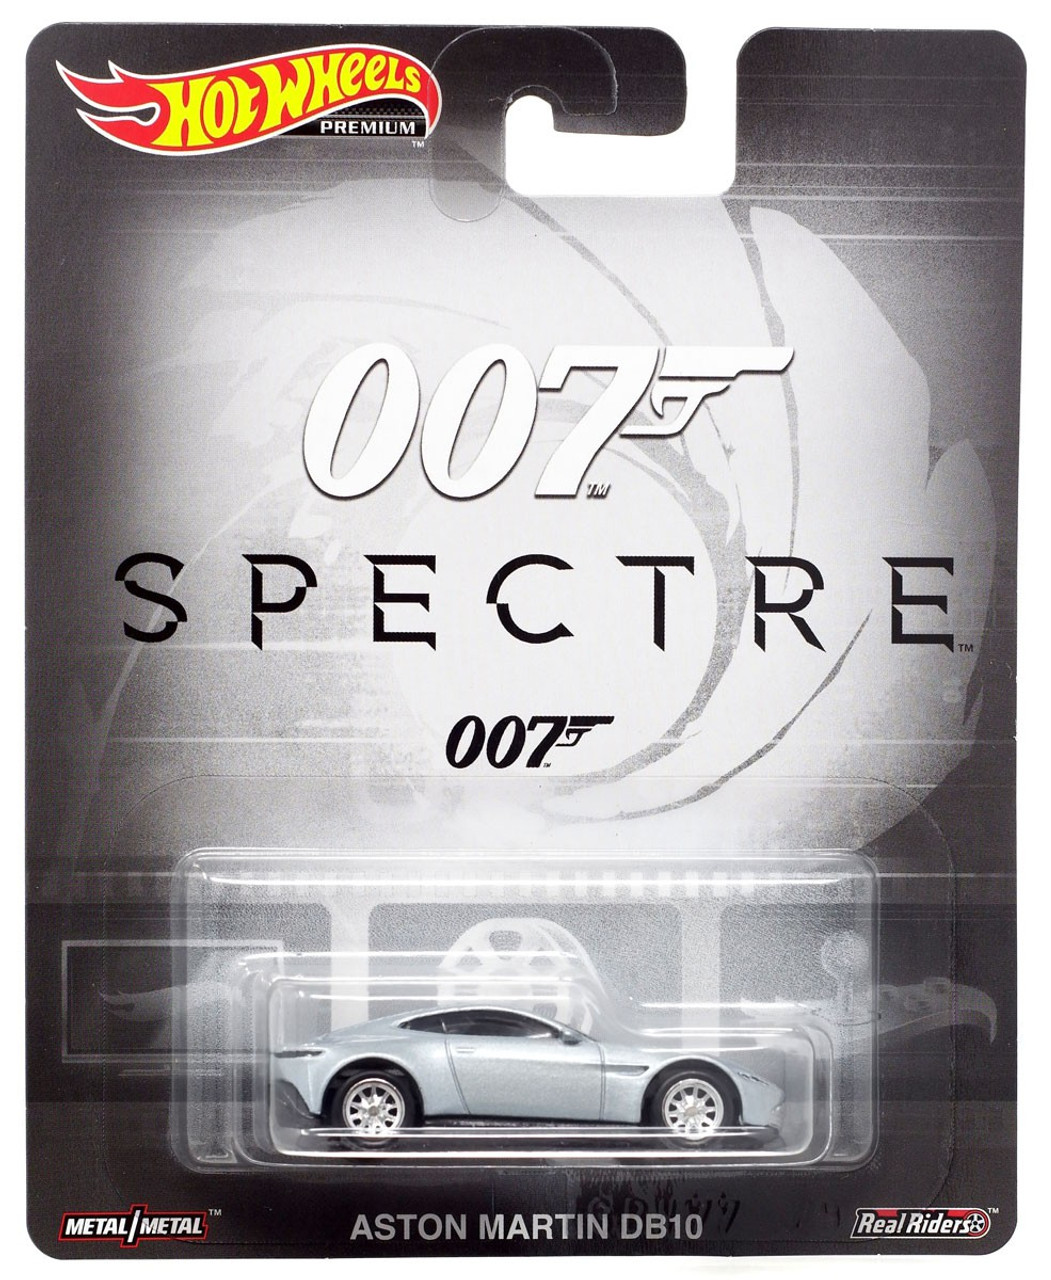 Hot Wheels Premium Aston Martin DB10 Die Cast Car [007 Spectre]